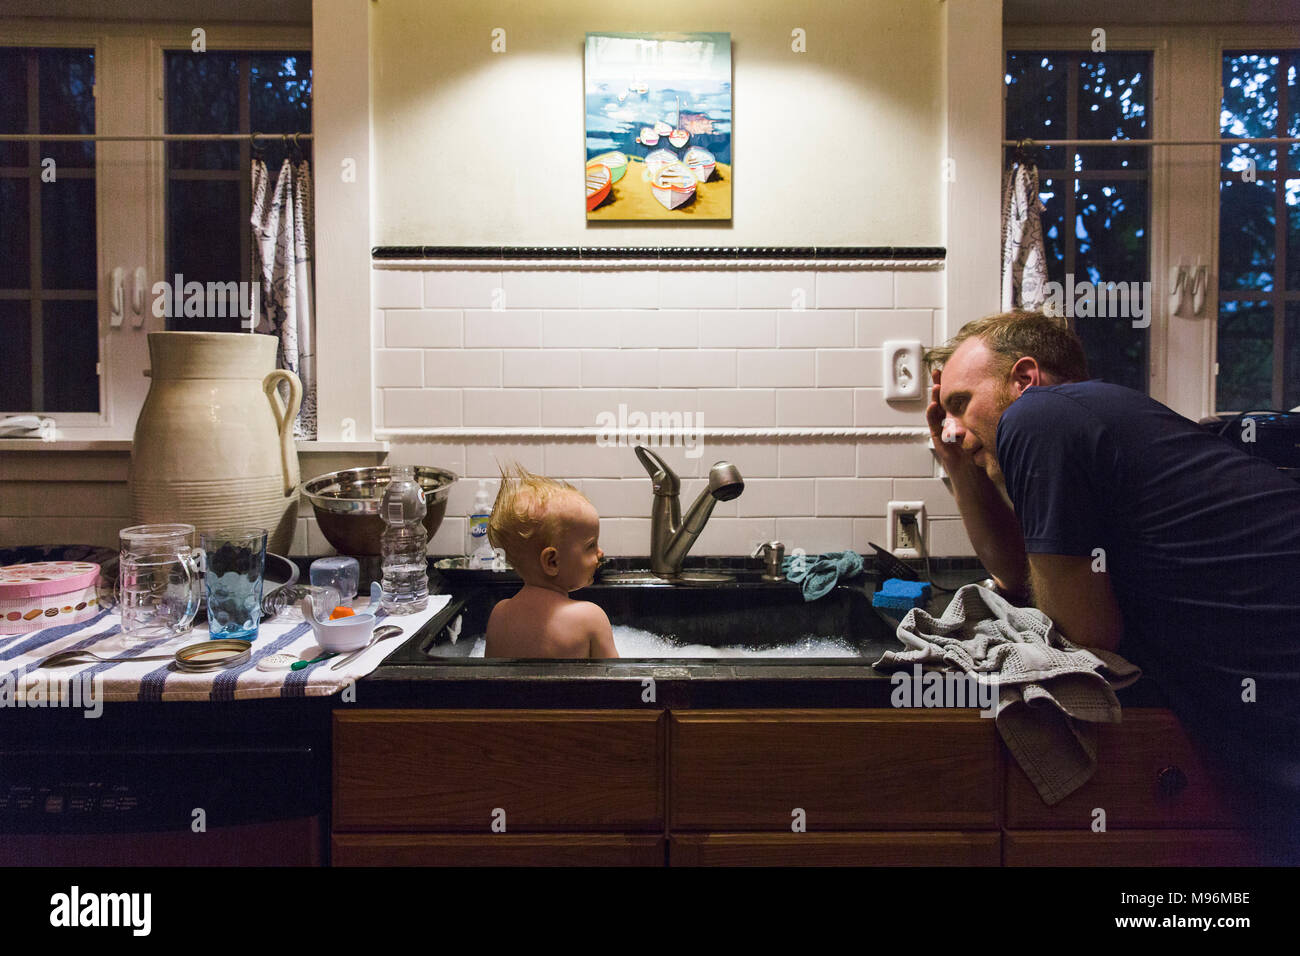 Father washing baby in sink - Stock Image